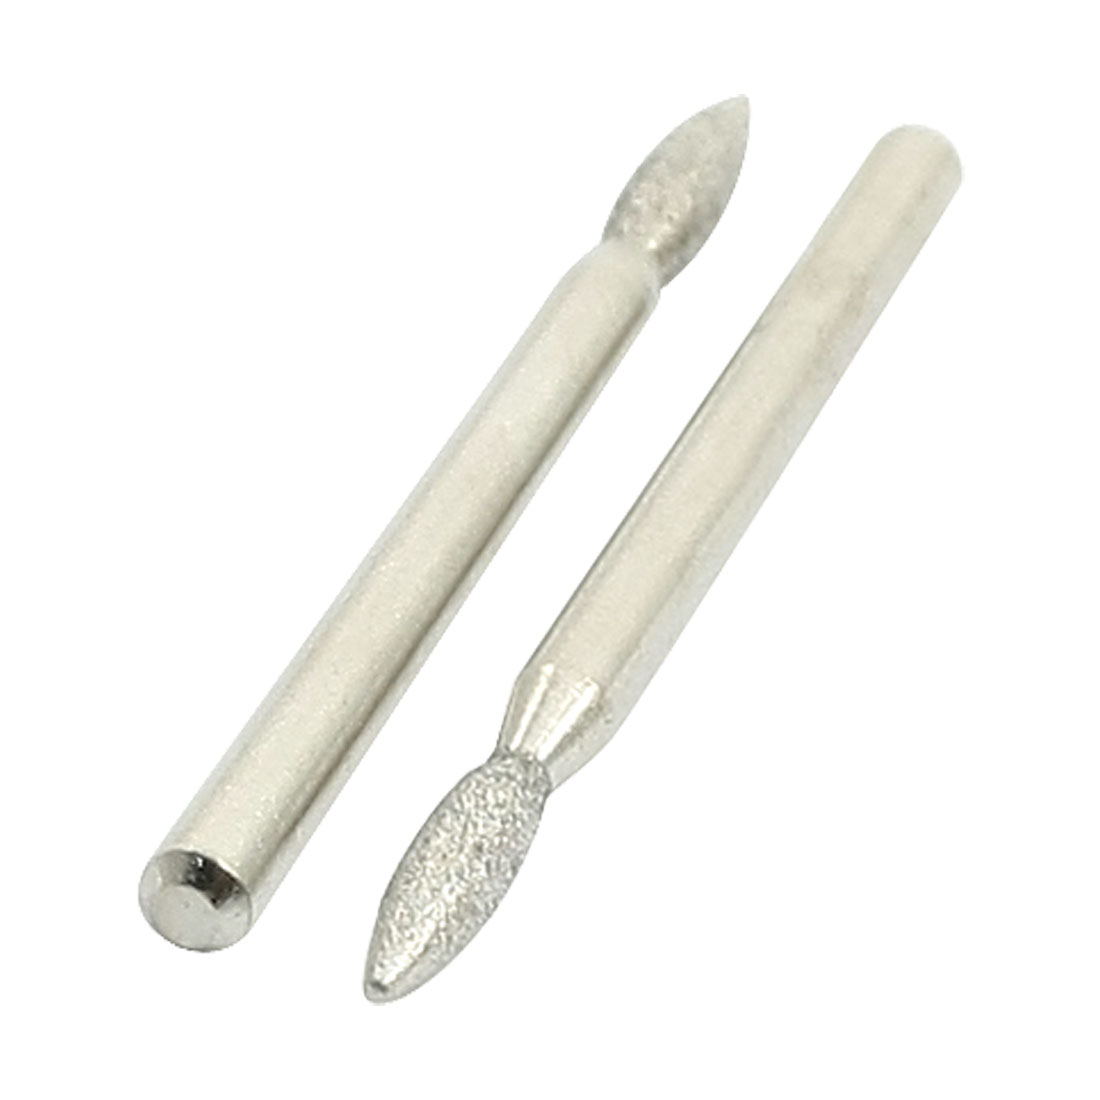 3mm Shank 2.6mm Tip Diamond Points Grinding Drill Bit 2 Pieces